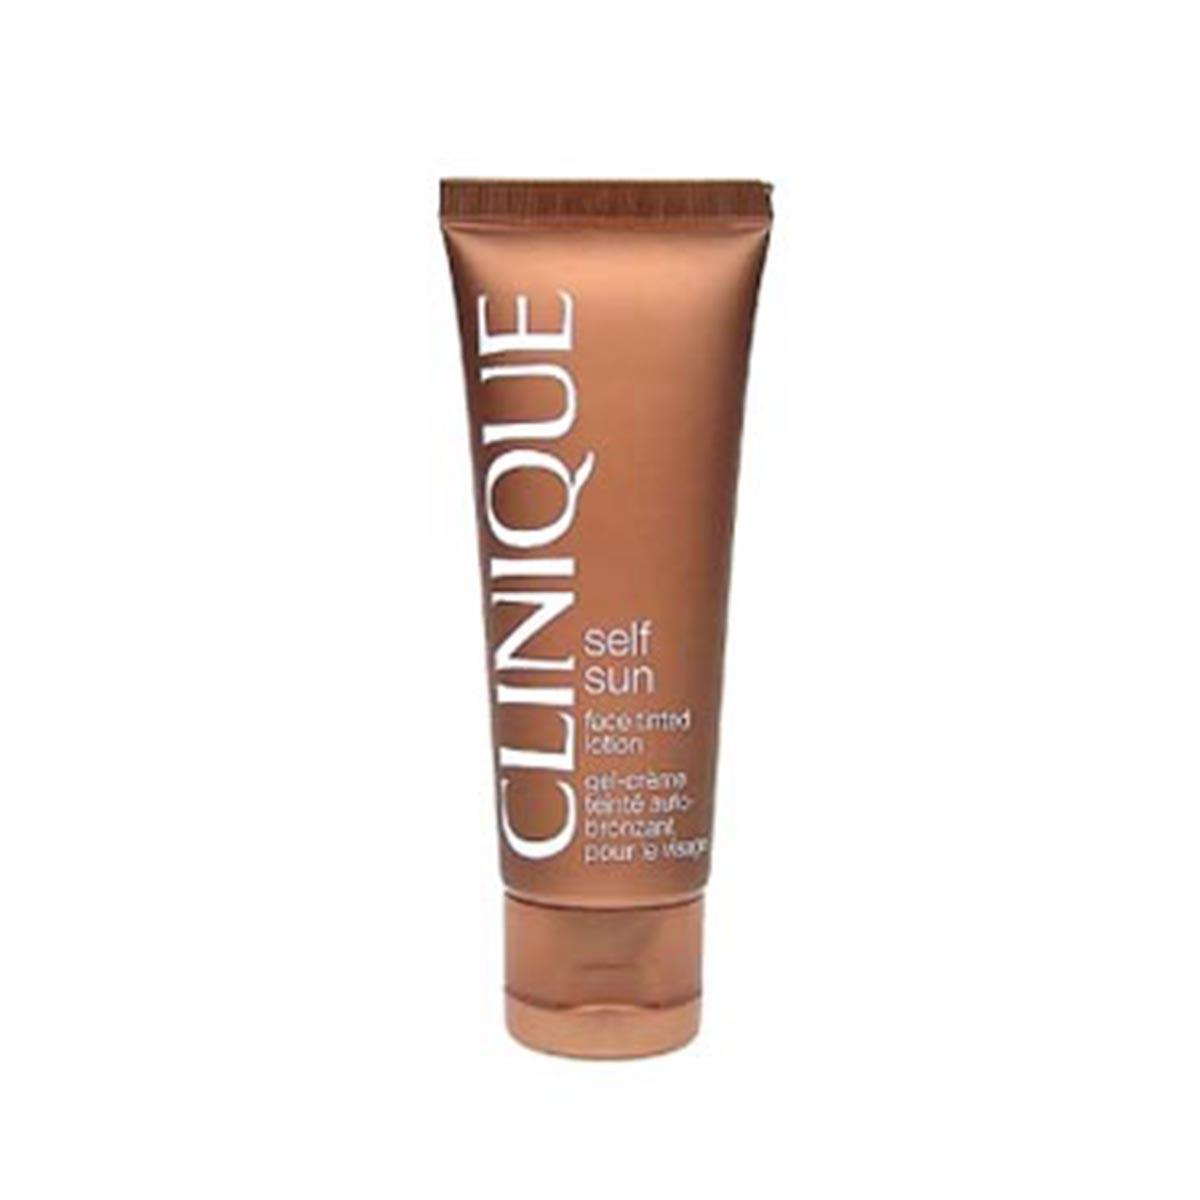 Clinique Self Sun Face Tinted Lotion 50 ml